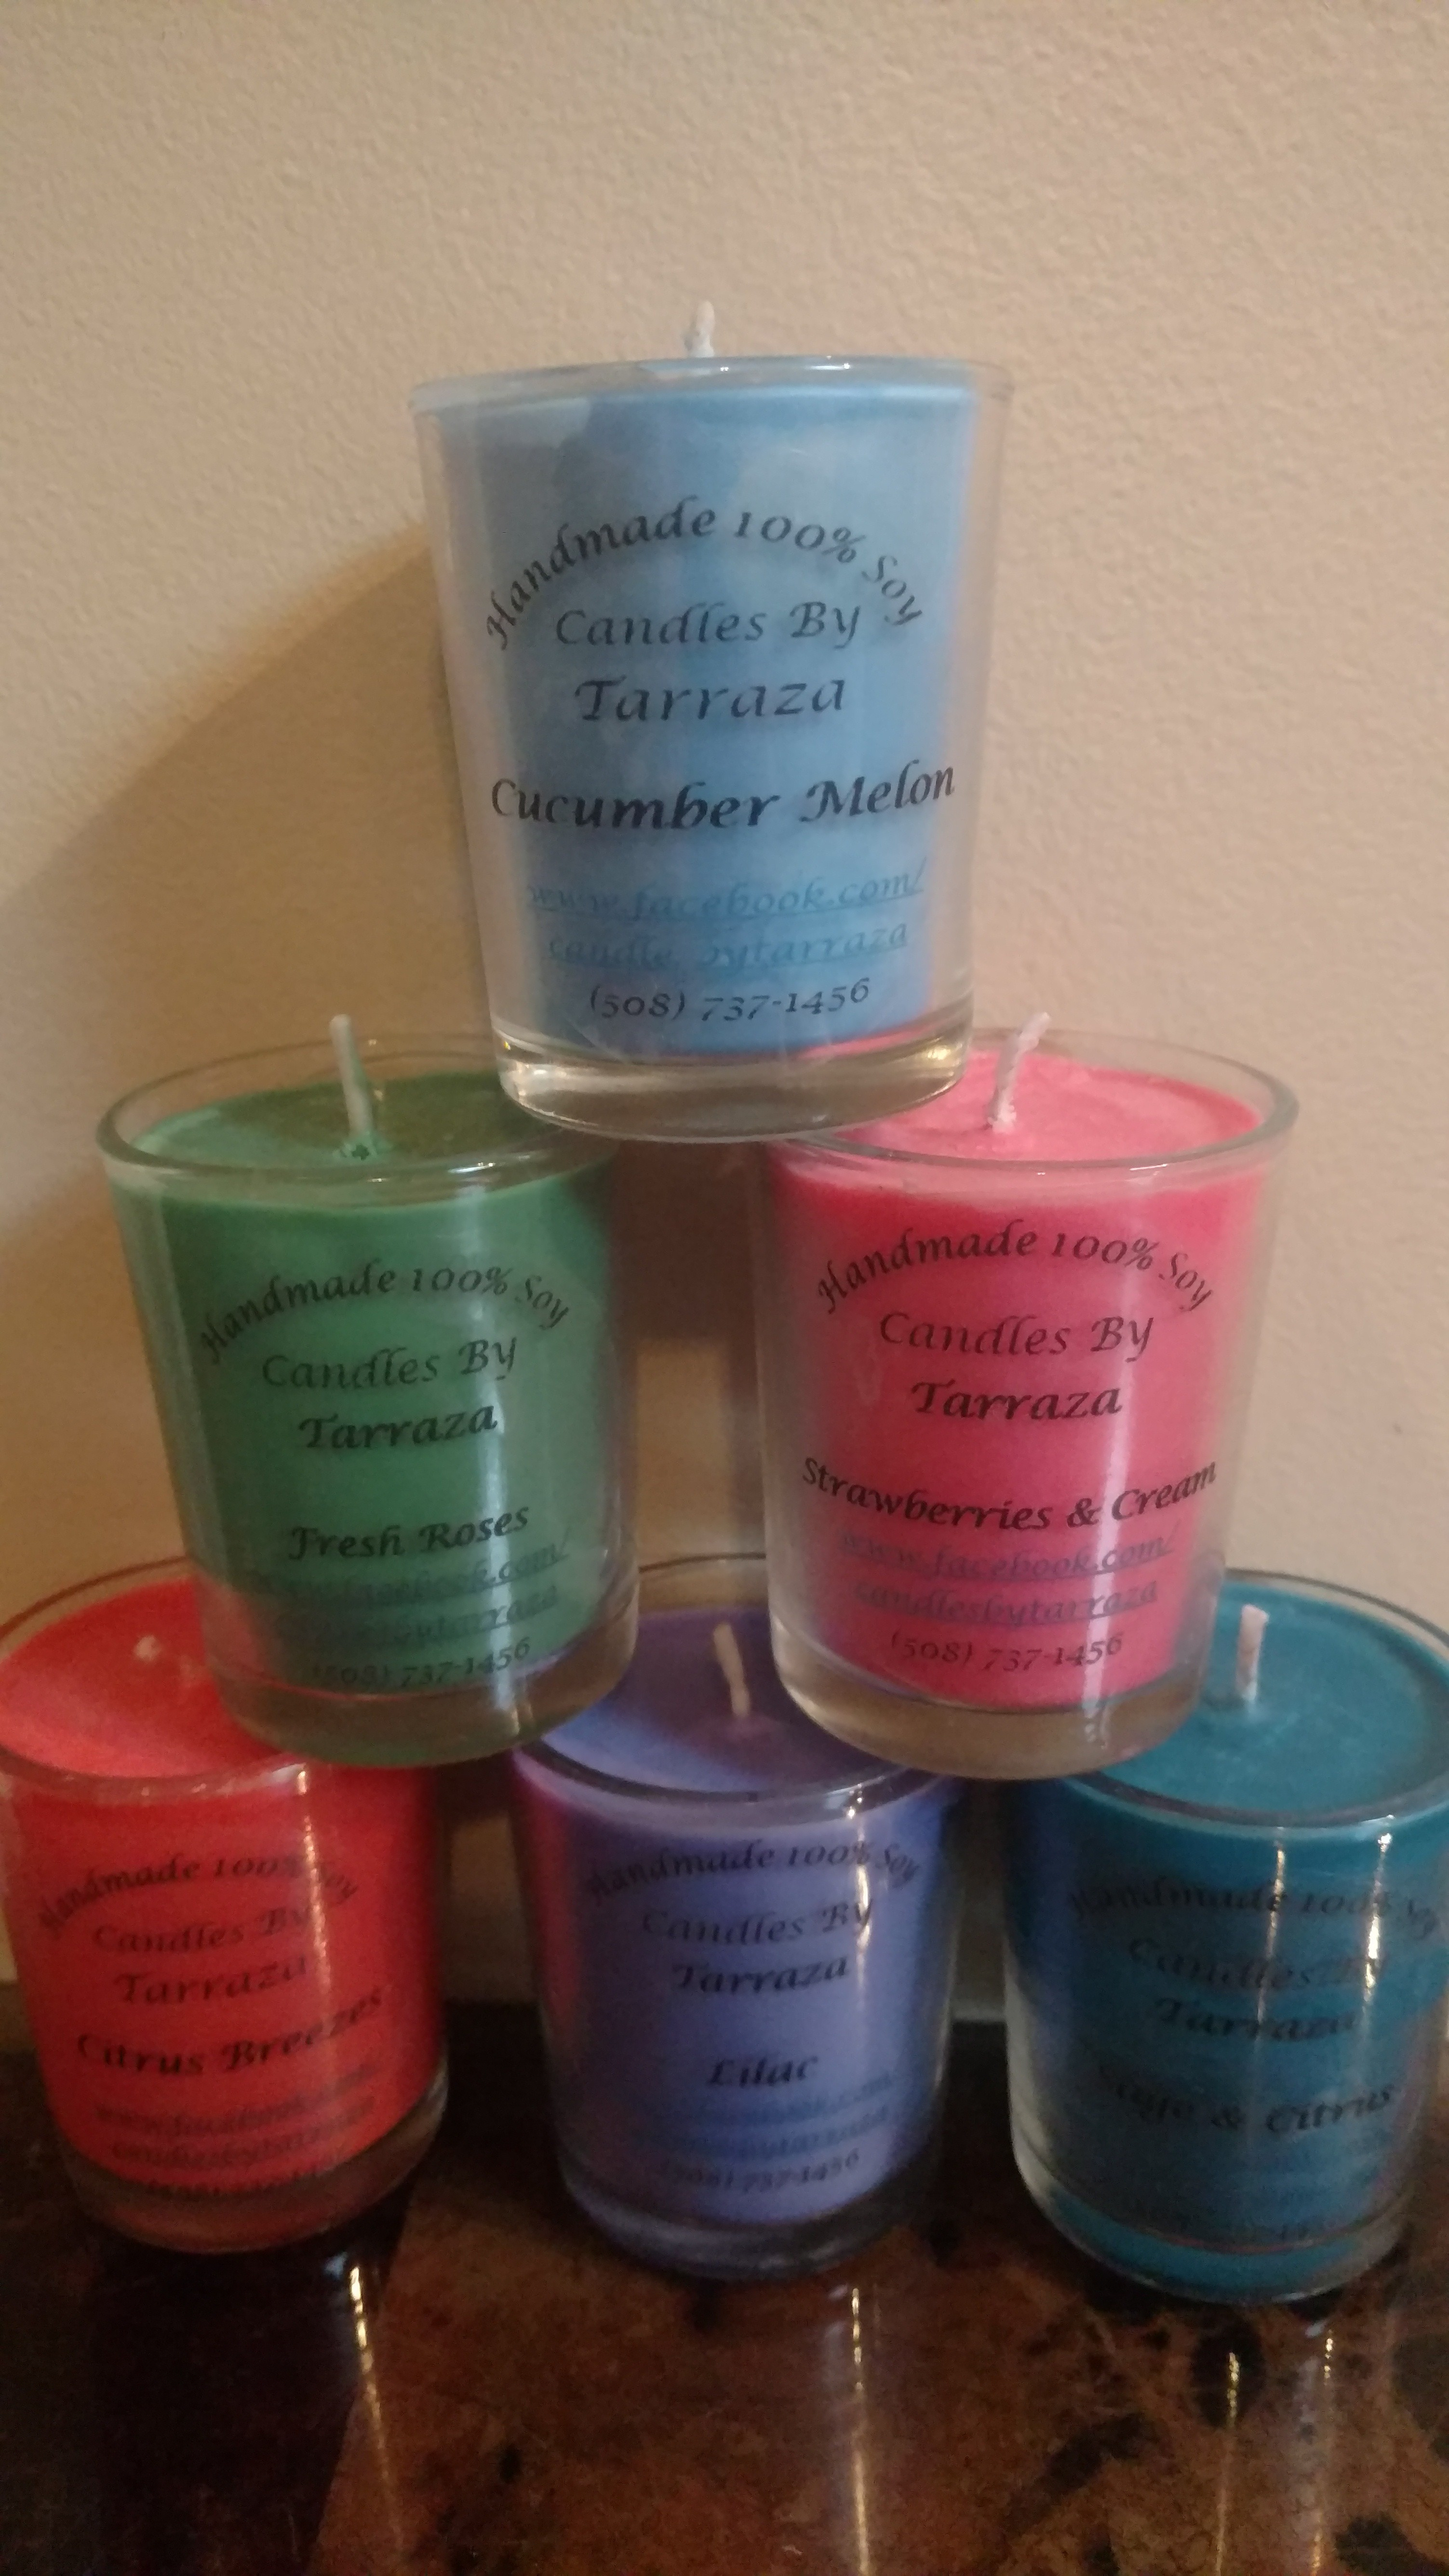 Cape Cod Candles